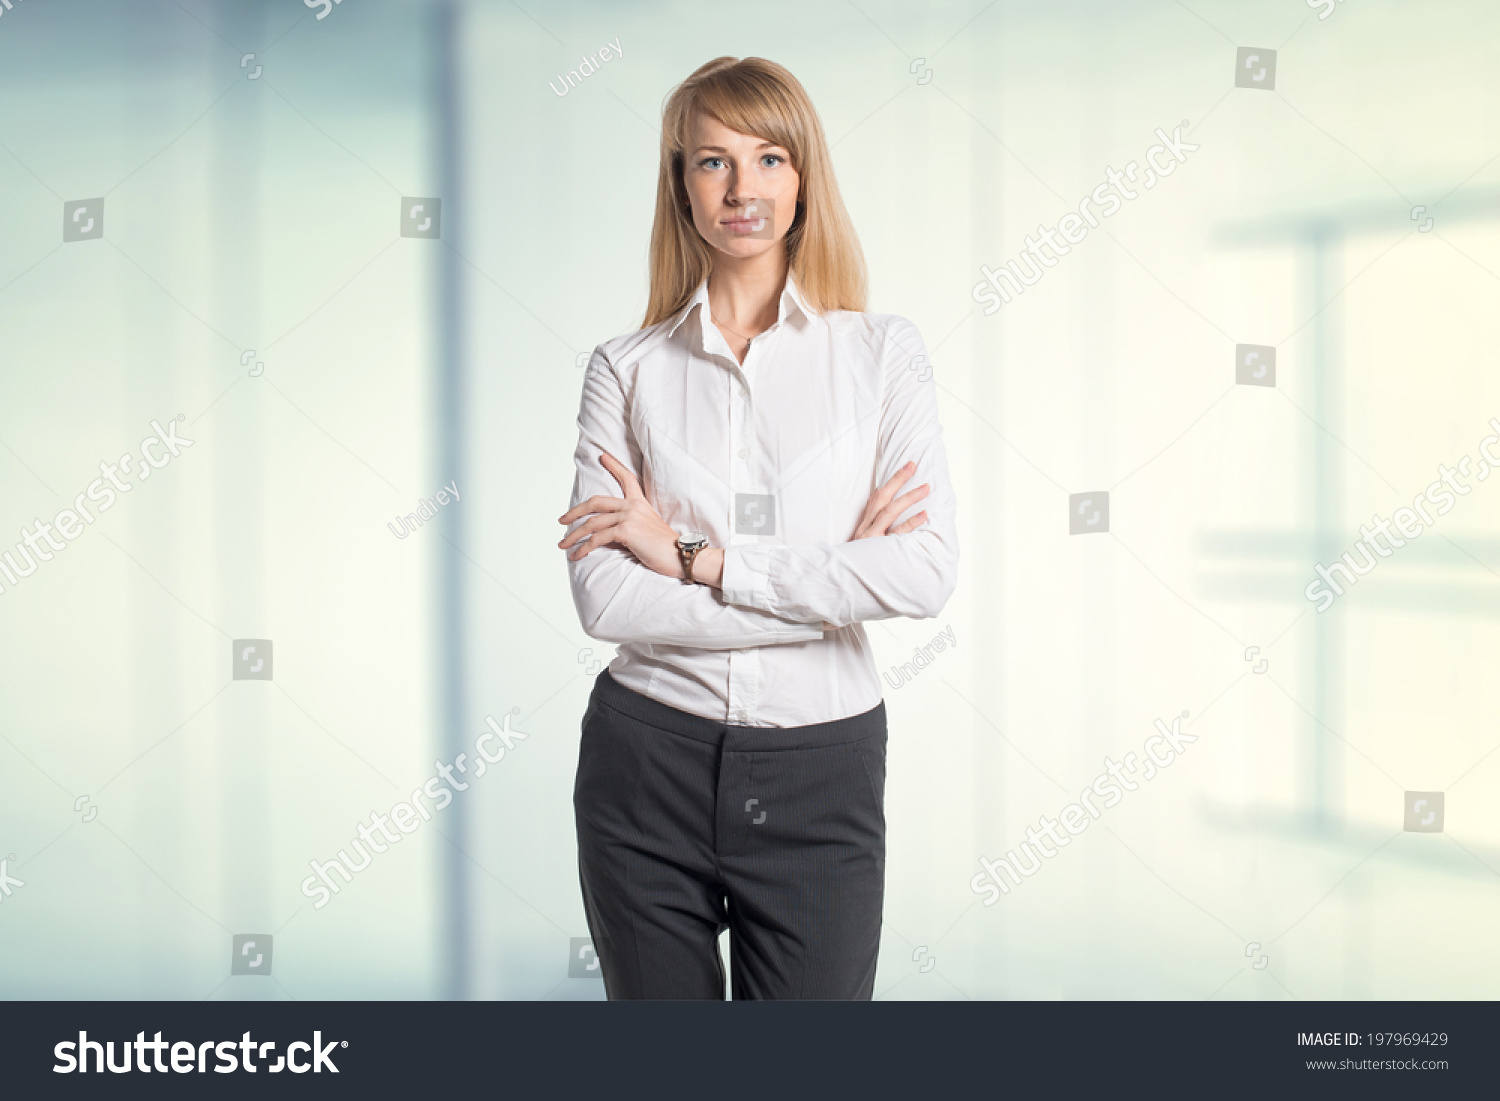 Portrait young business woman white shirt stock photo 197969429 shutterstock - Office portrait photography ...